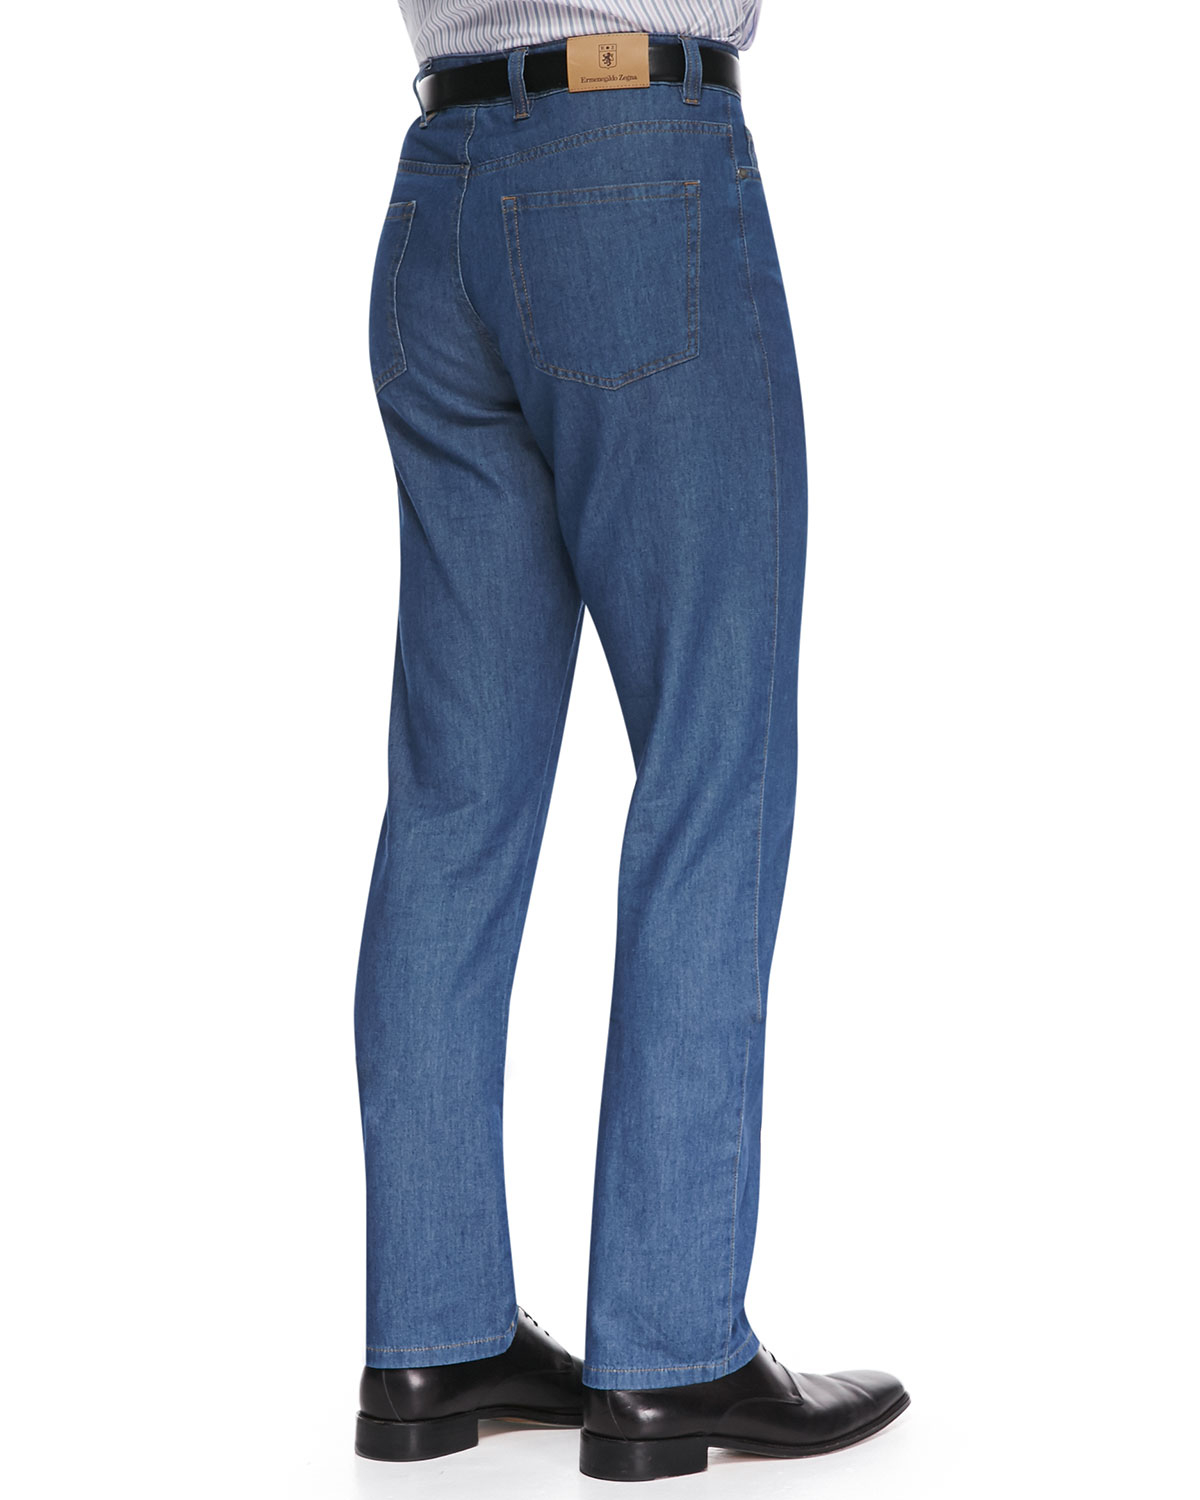 Lyst - Ermenegildo Zegna Twill Denim Jeans in Blue for Men